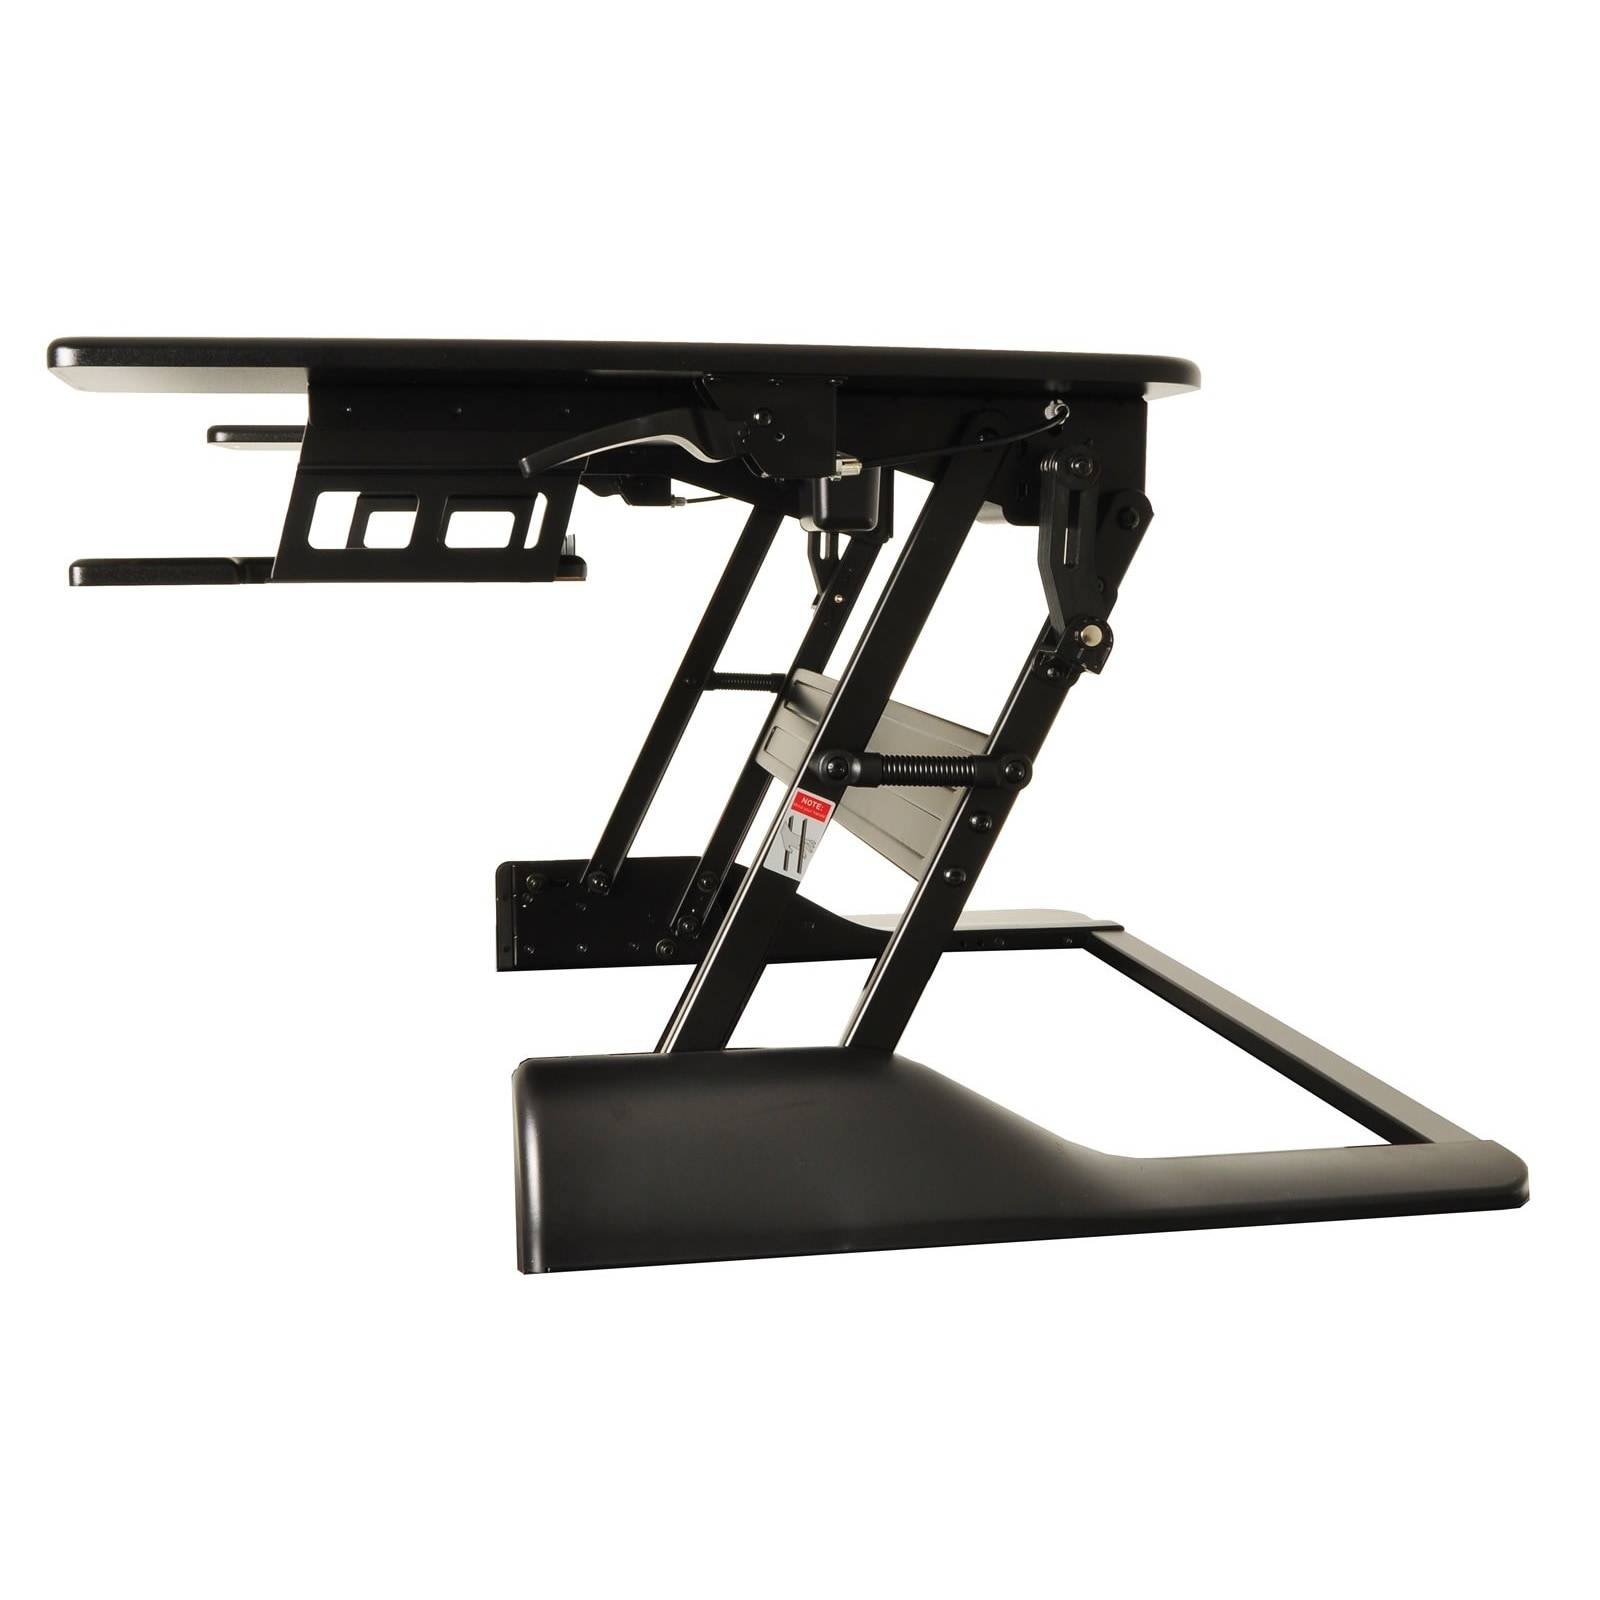 Shop Conquer Ergonomic Adjustable Height Tabletop Standing Desk Workstation    Free Shipping Today   Overstock.com   12543868